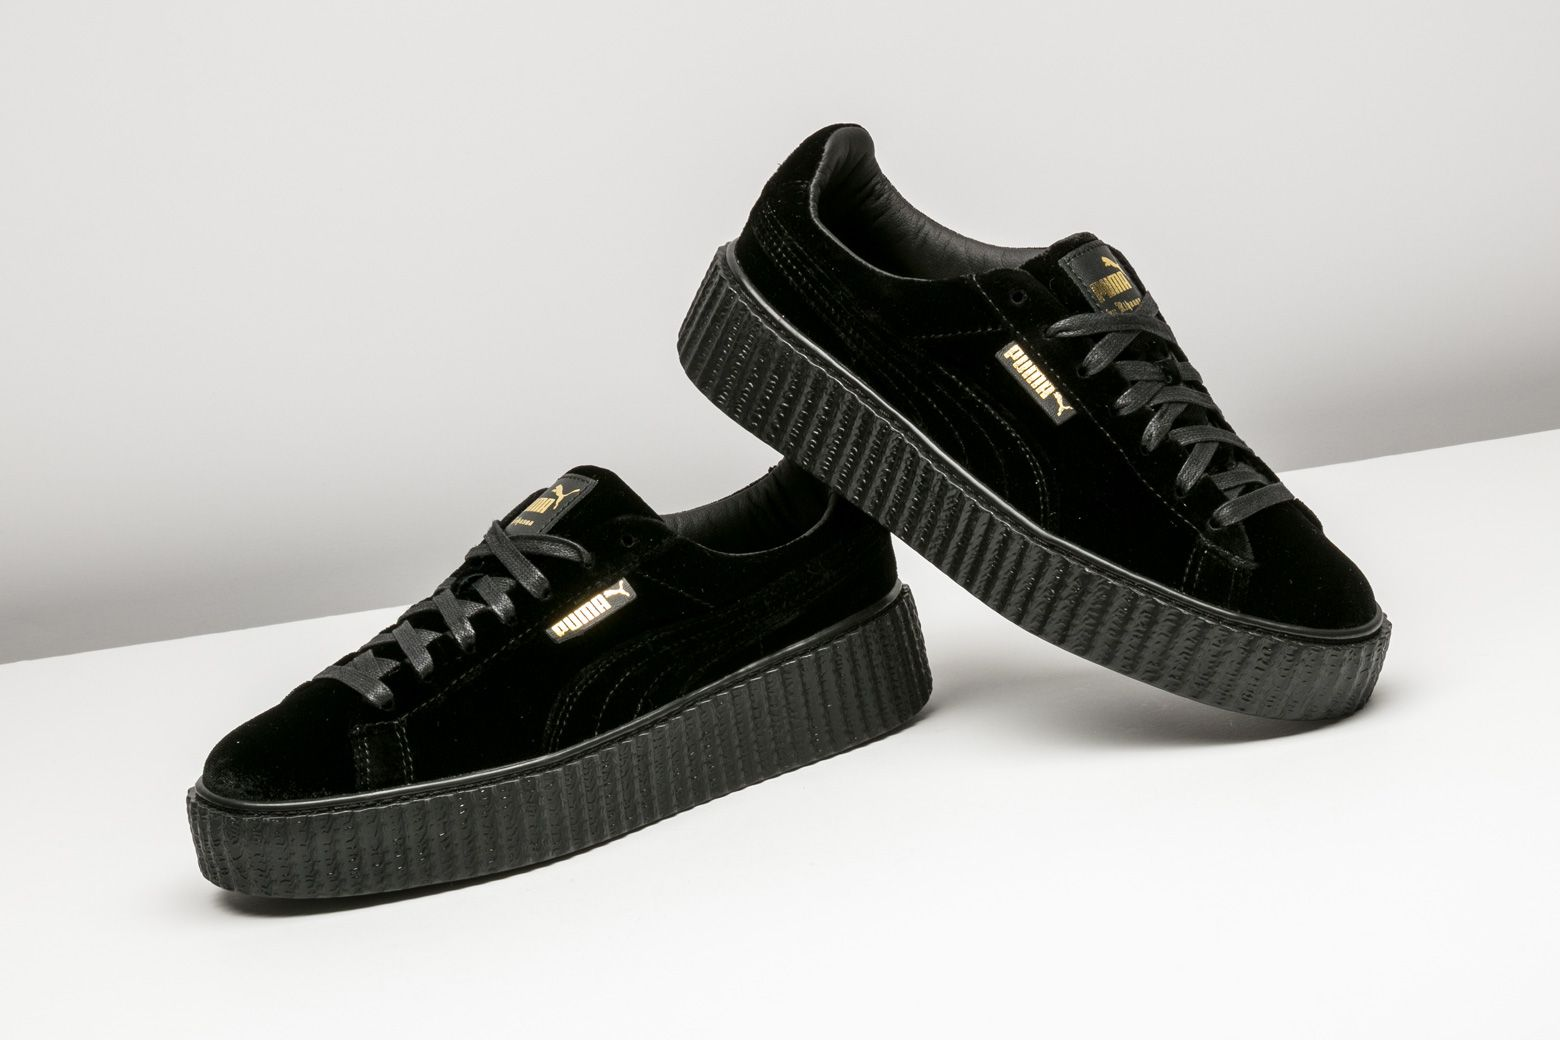 finest selection 44337 aa00d Puma Creeper Velvet 'Fenty' - Size 9W in 2019 | Puma ...